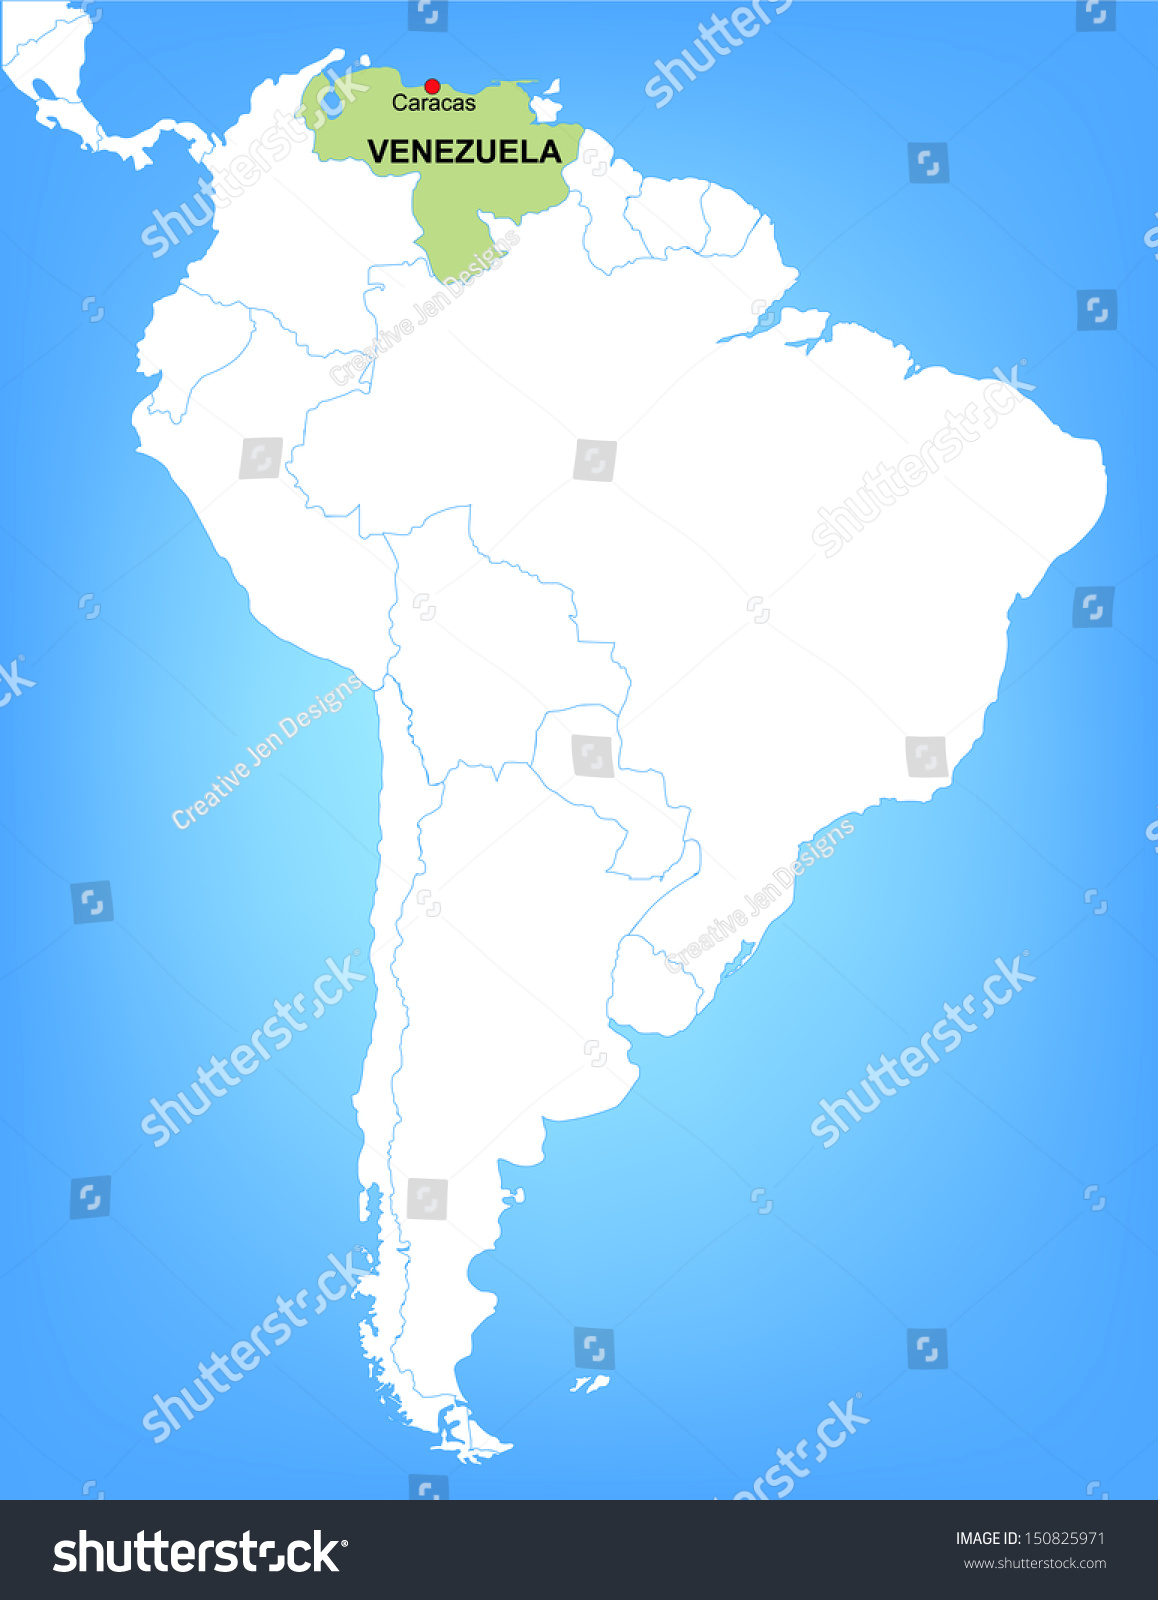 Vector Map South America Highlighting Country Stock Vector - Map of venezuela south america